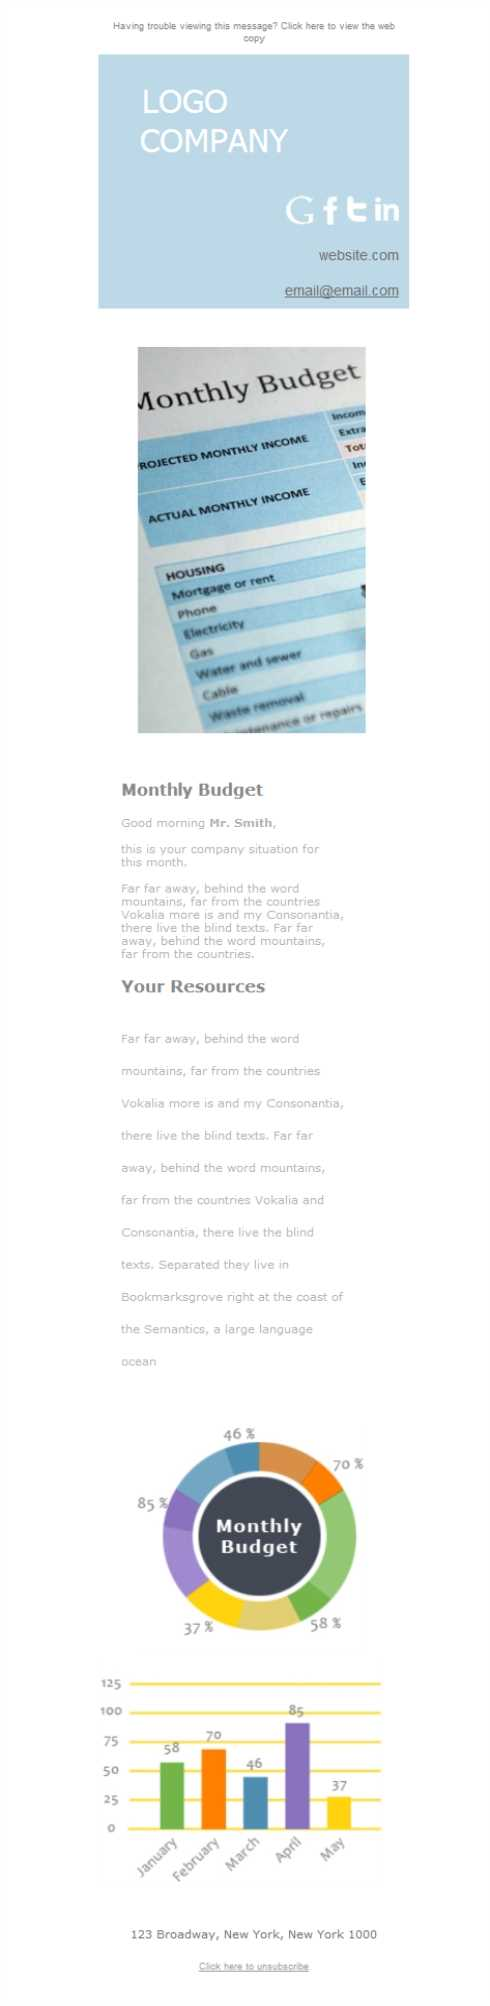 Templates Emailing Accounting Budget Sarbacane